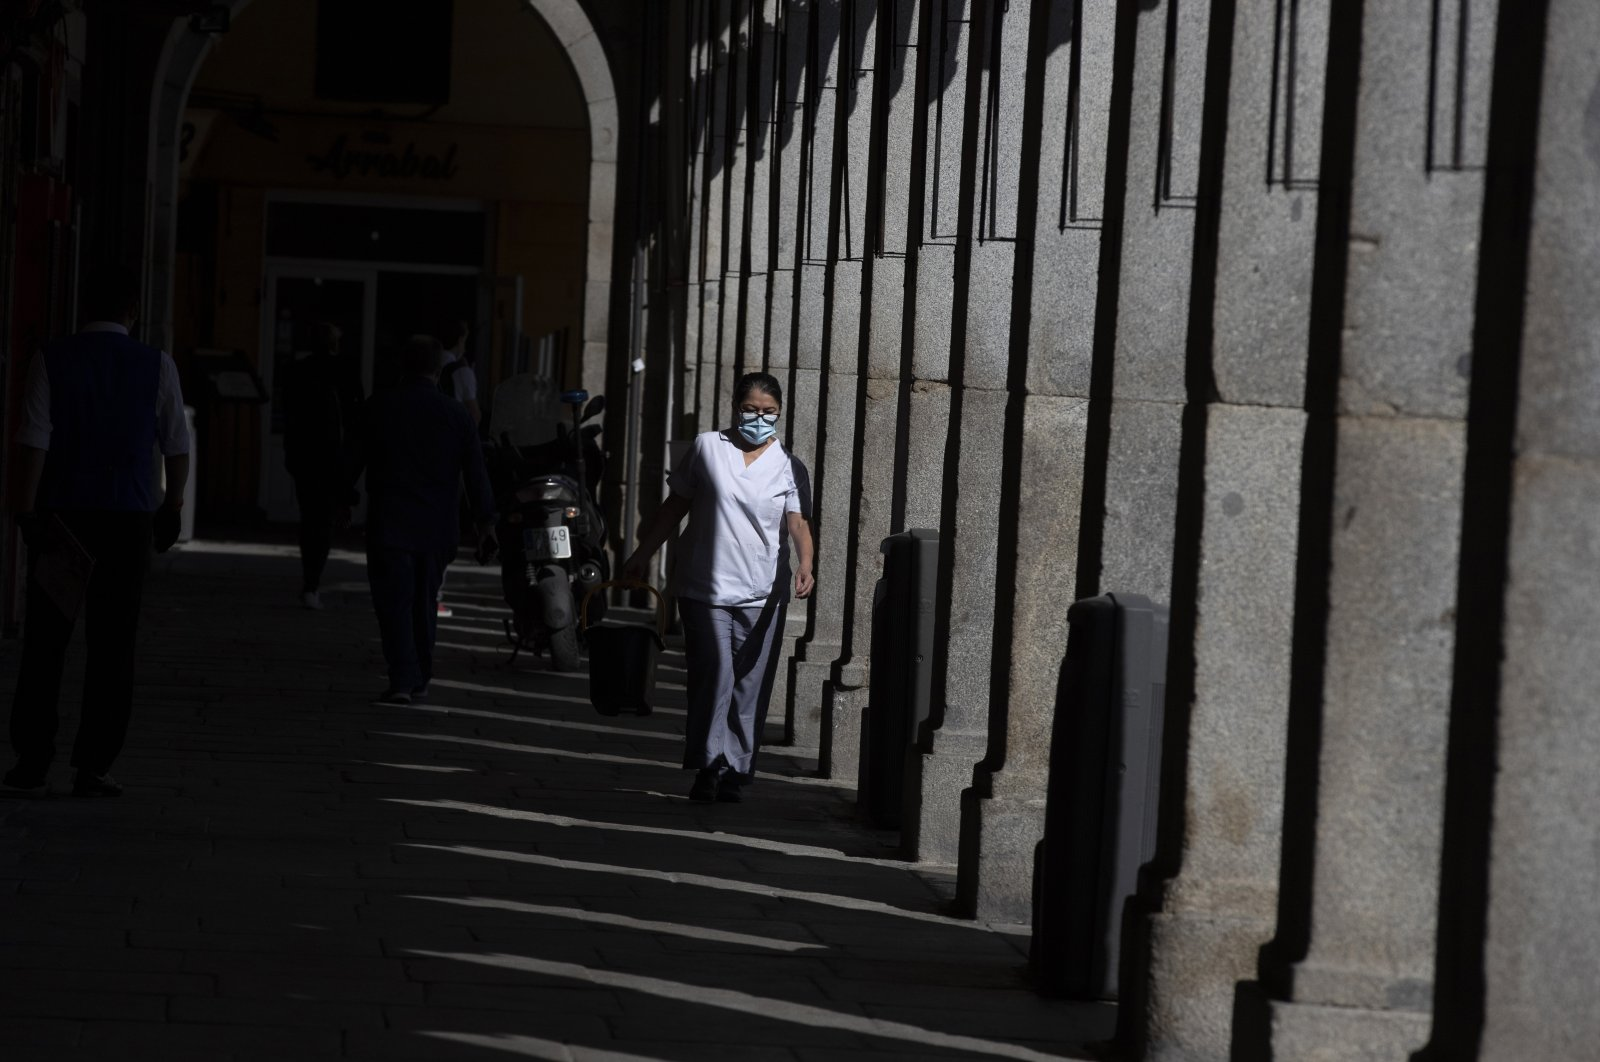 A cleaner wearing a face mask to prevent the spread of coronavirus works at the Plaza Mayor square in downtown Madrid, Spain, Friday, Oct. 9, 2020. (AP Photo)